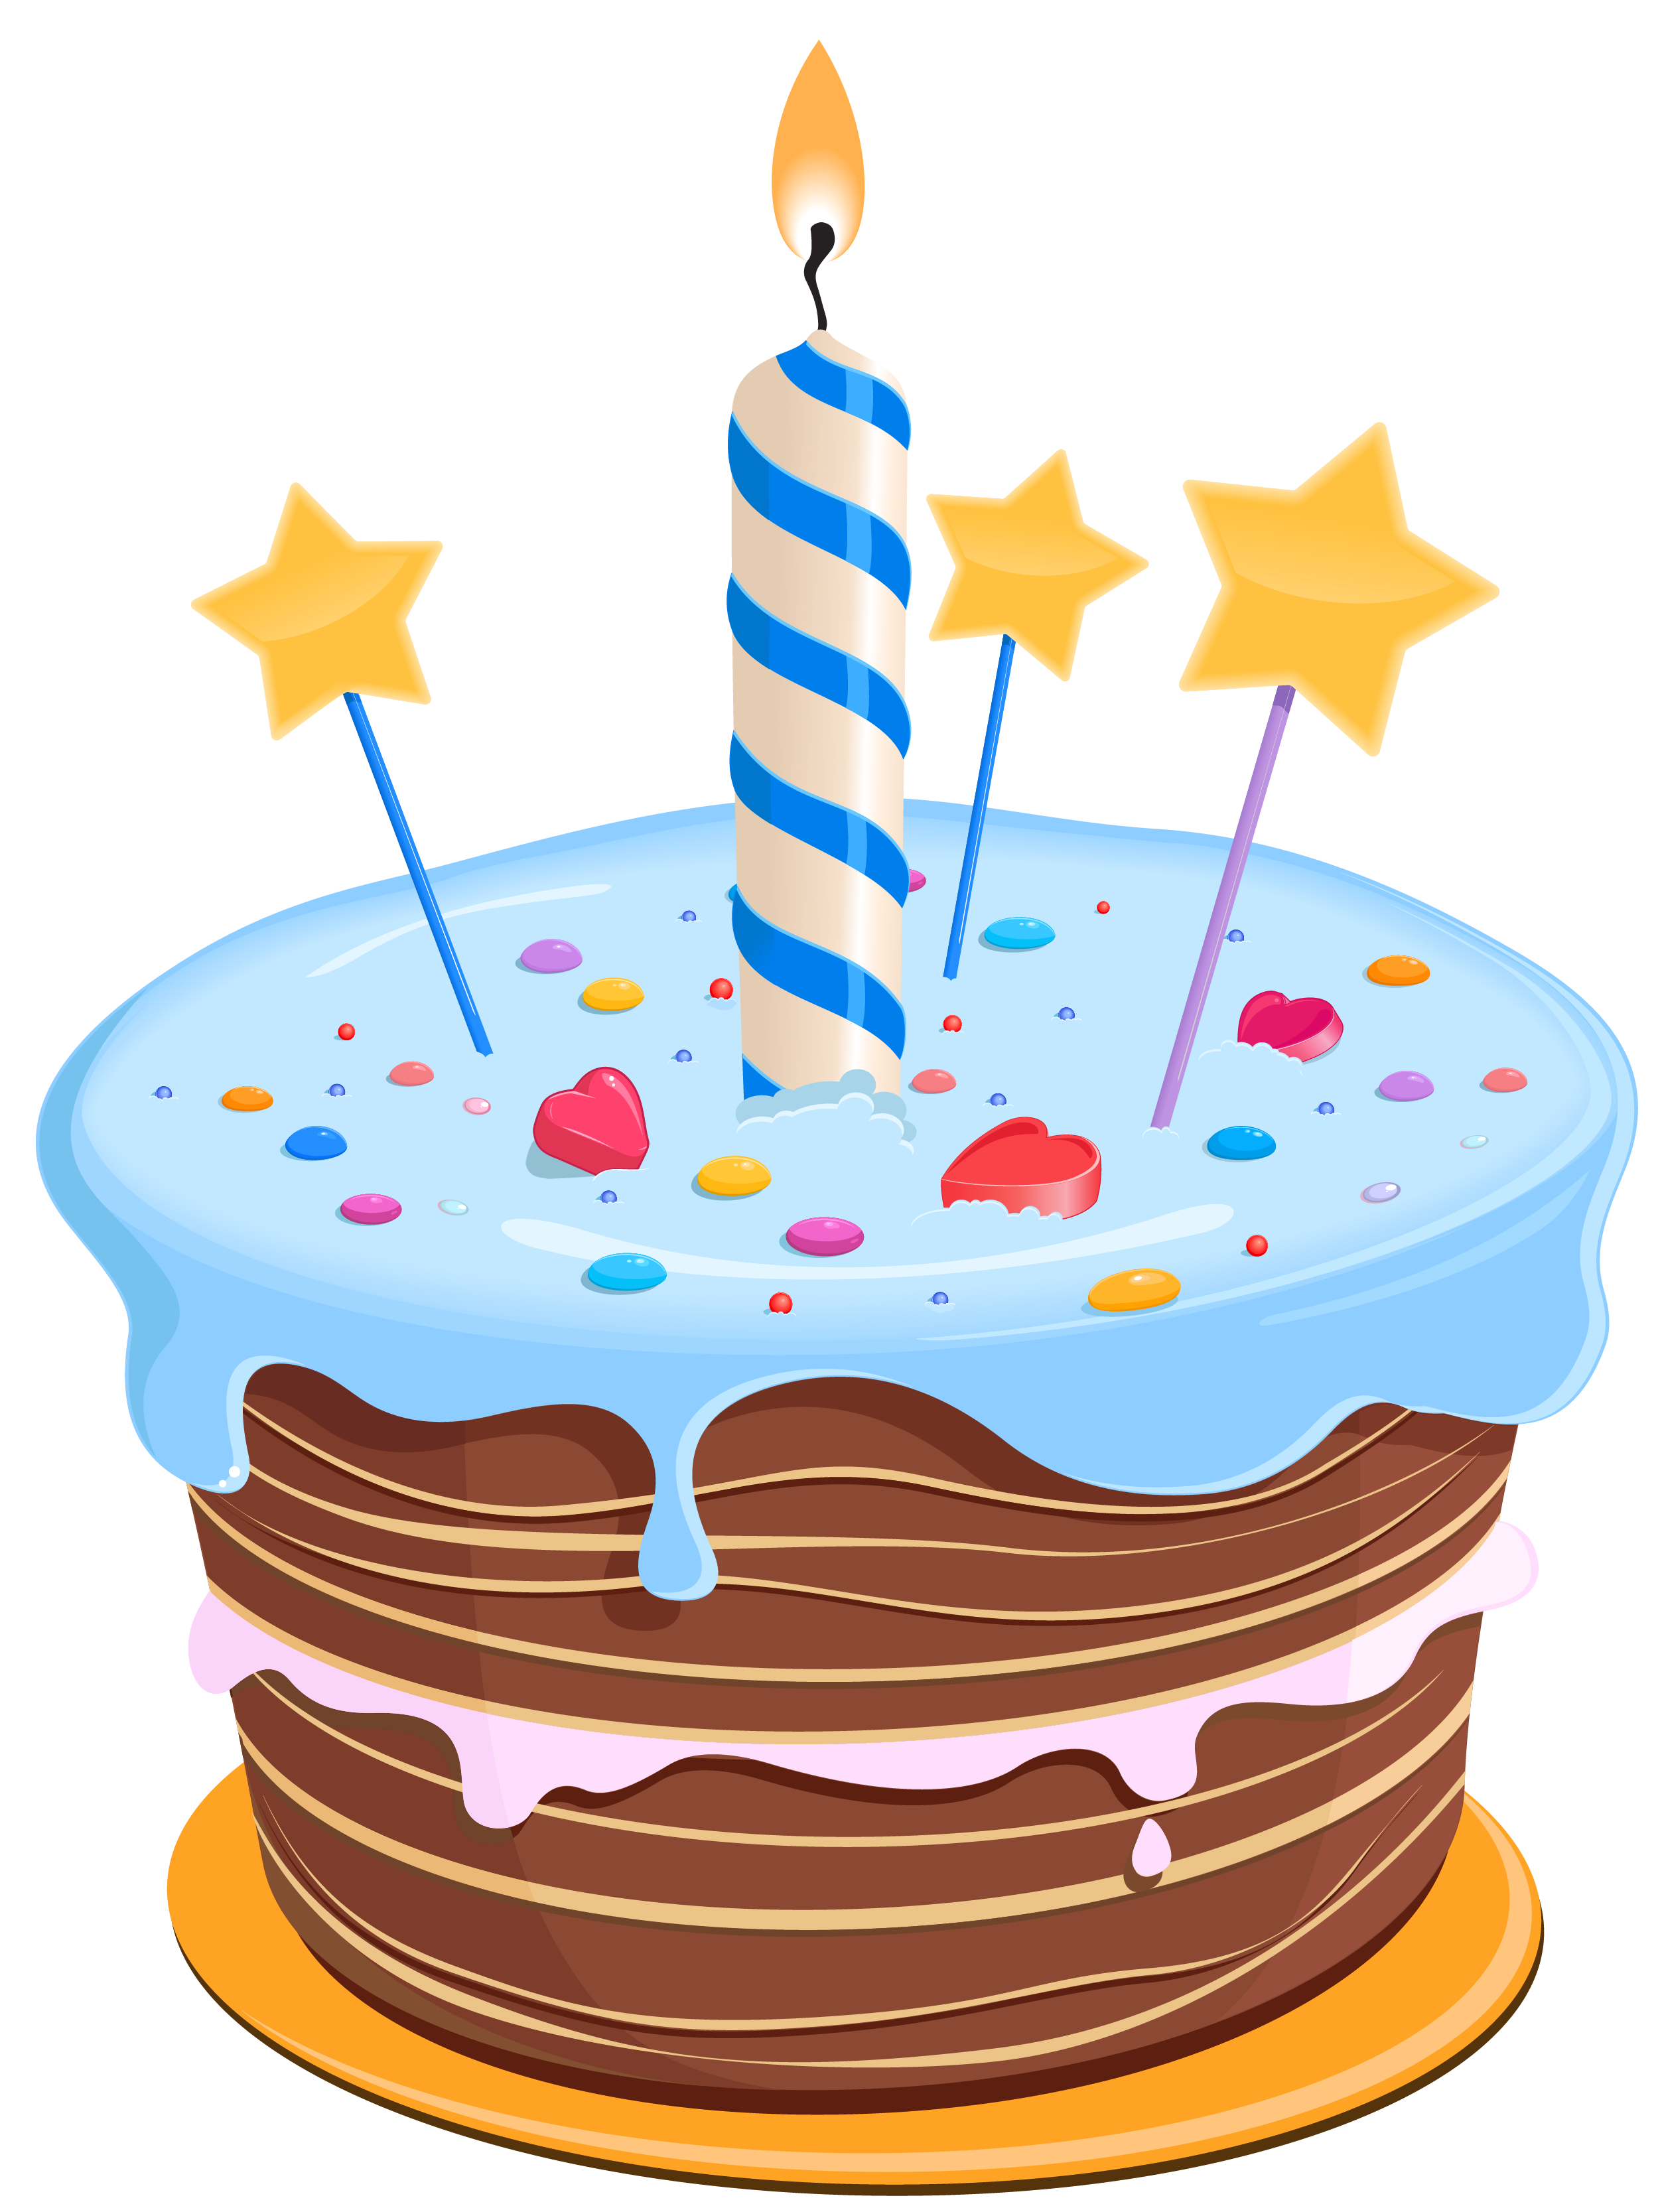 Png transparent images pluspng. August clipart birthday cake clipart black and white